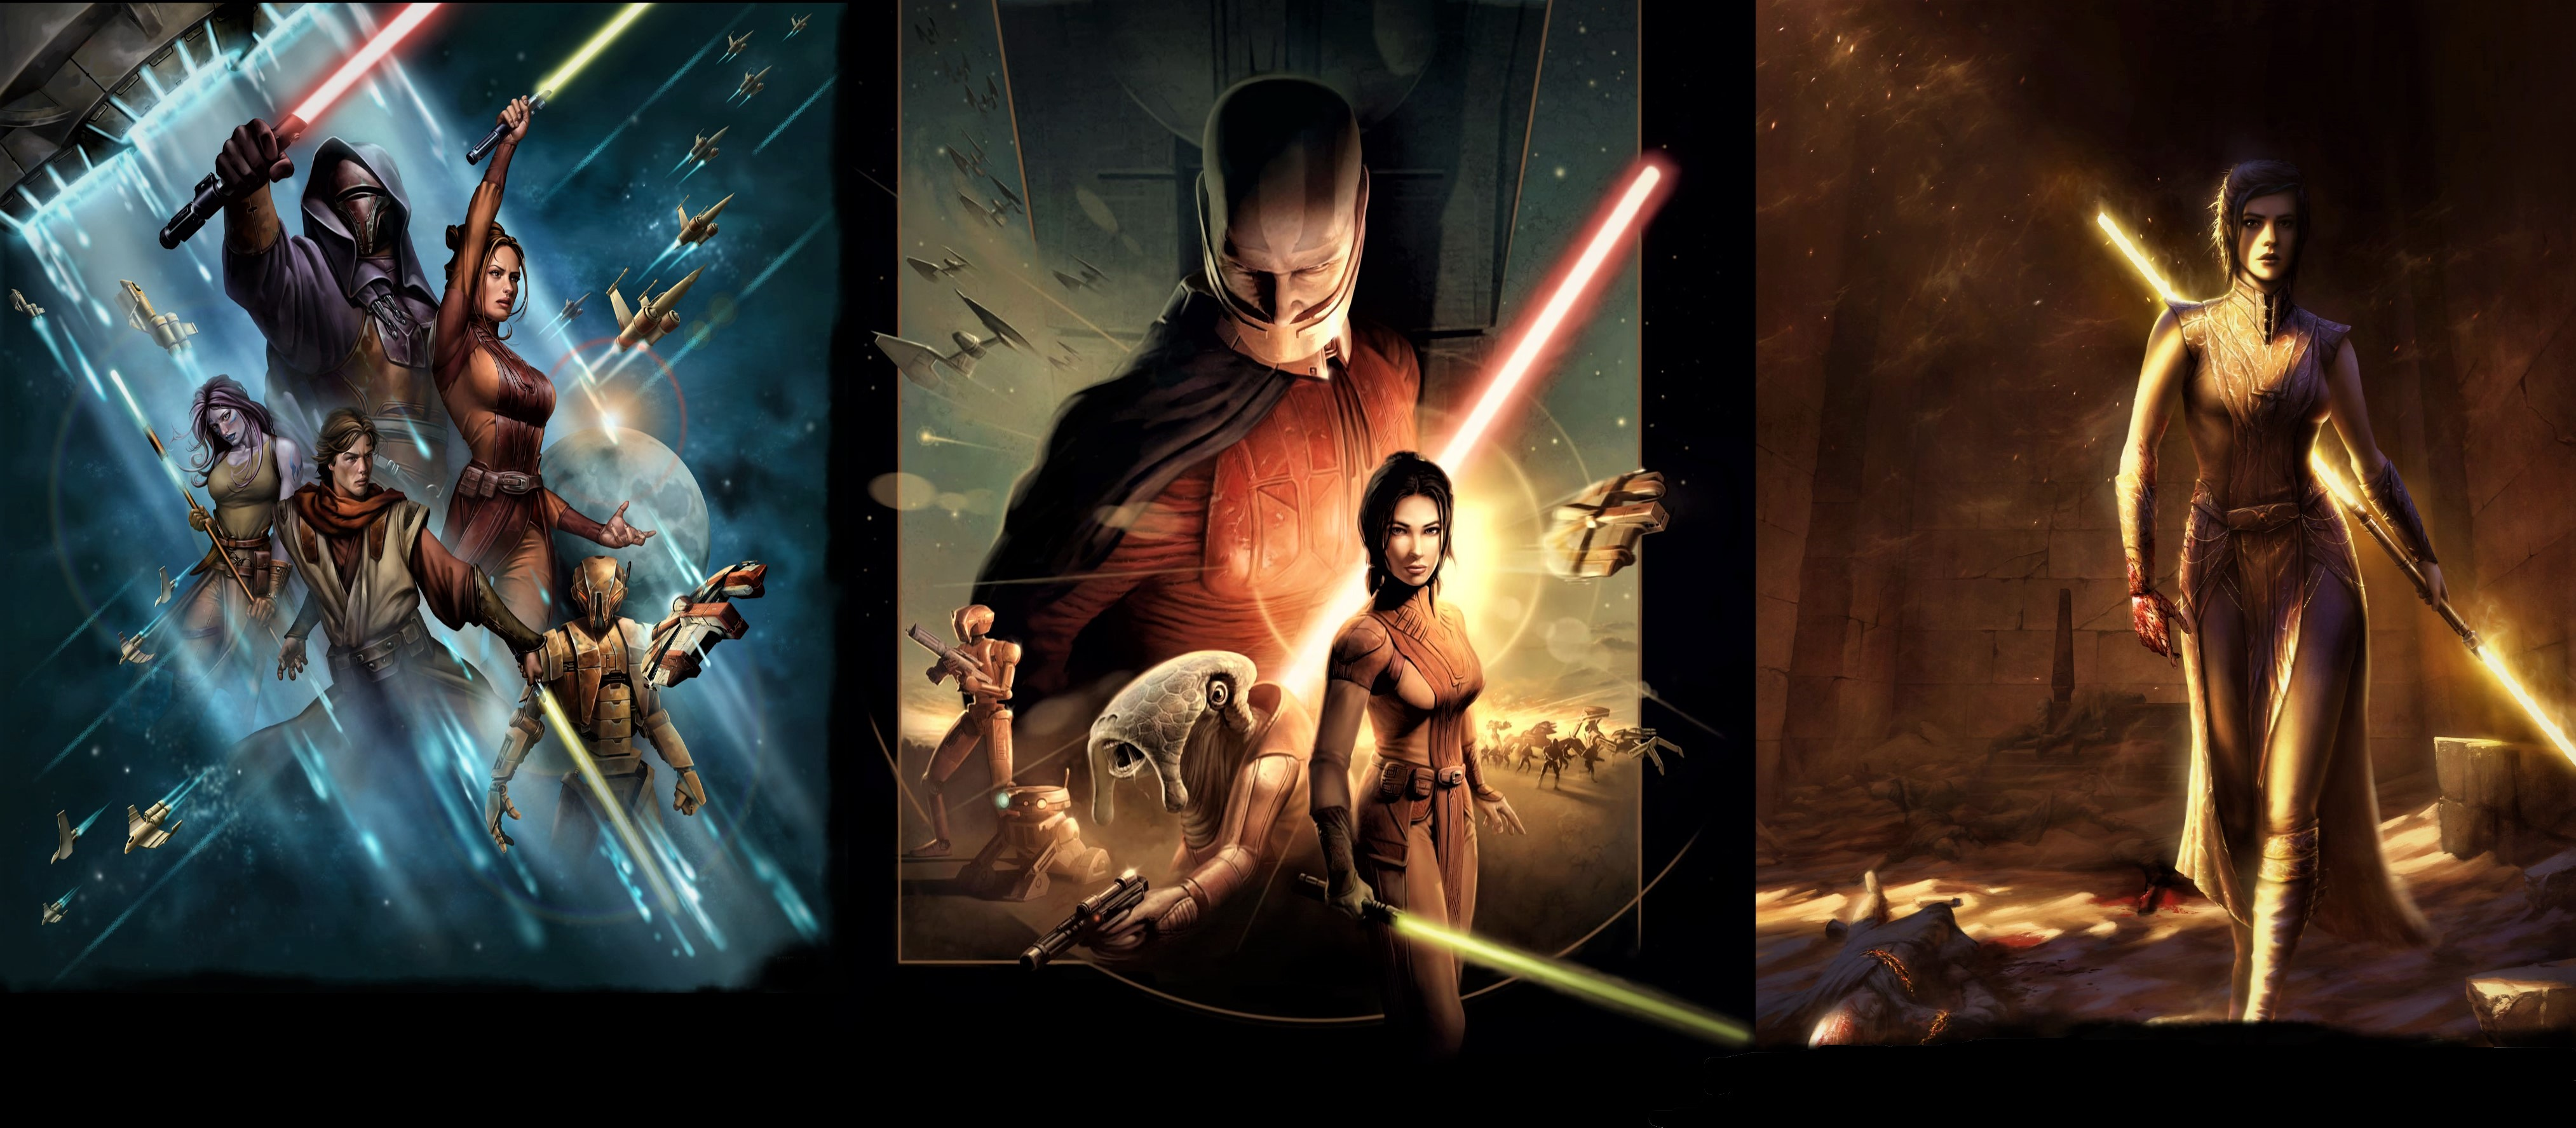 Retro Game Review- Star Wars: Knights of the Old Republic